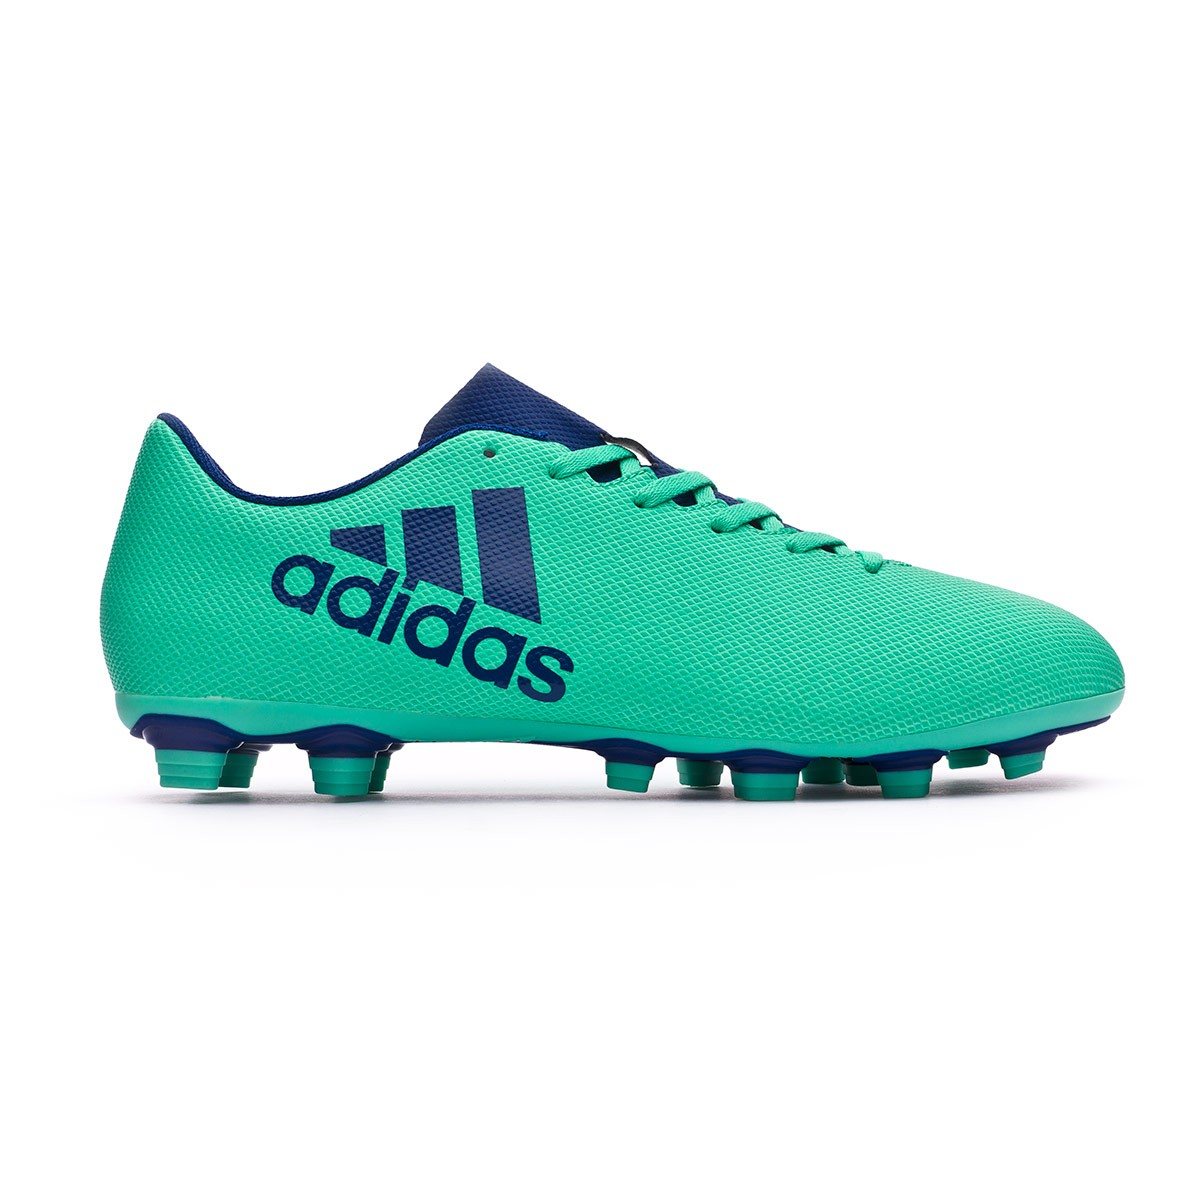 new styles 89aa3 ad42a Boot adidas X 17.4 FxG Aero green-Unity ink-Hi-res green - Football store  Fútbol Emotion